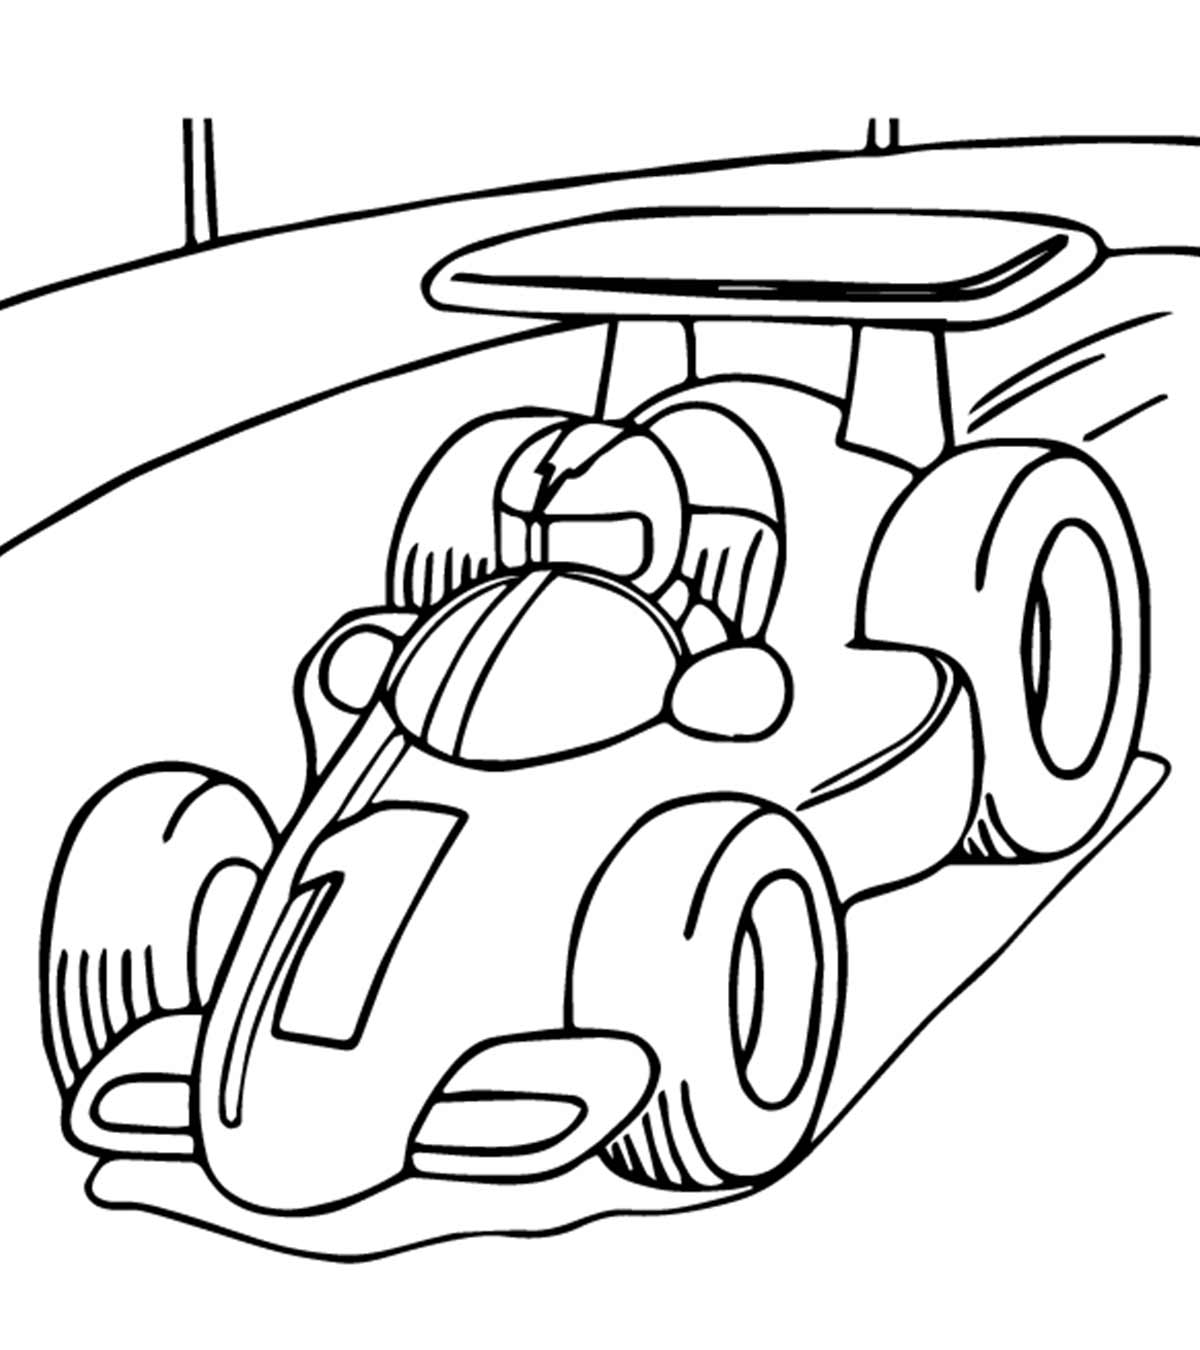 Top 10 Race Car Coloring Pages For Your Little Ones